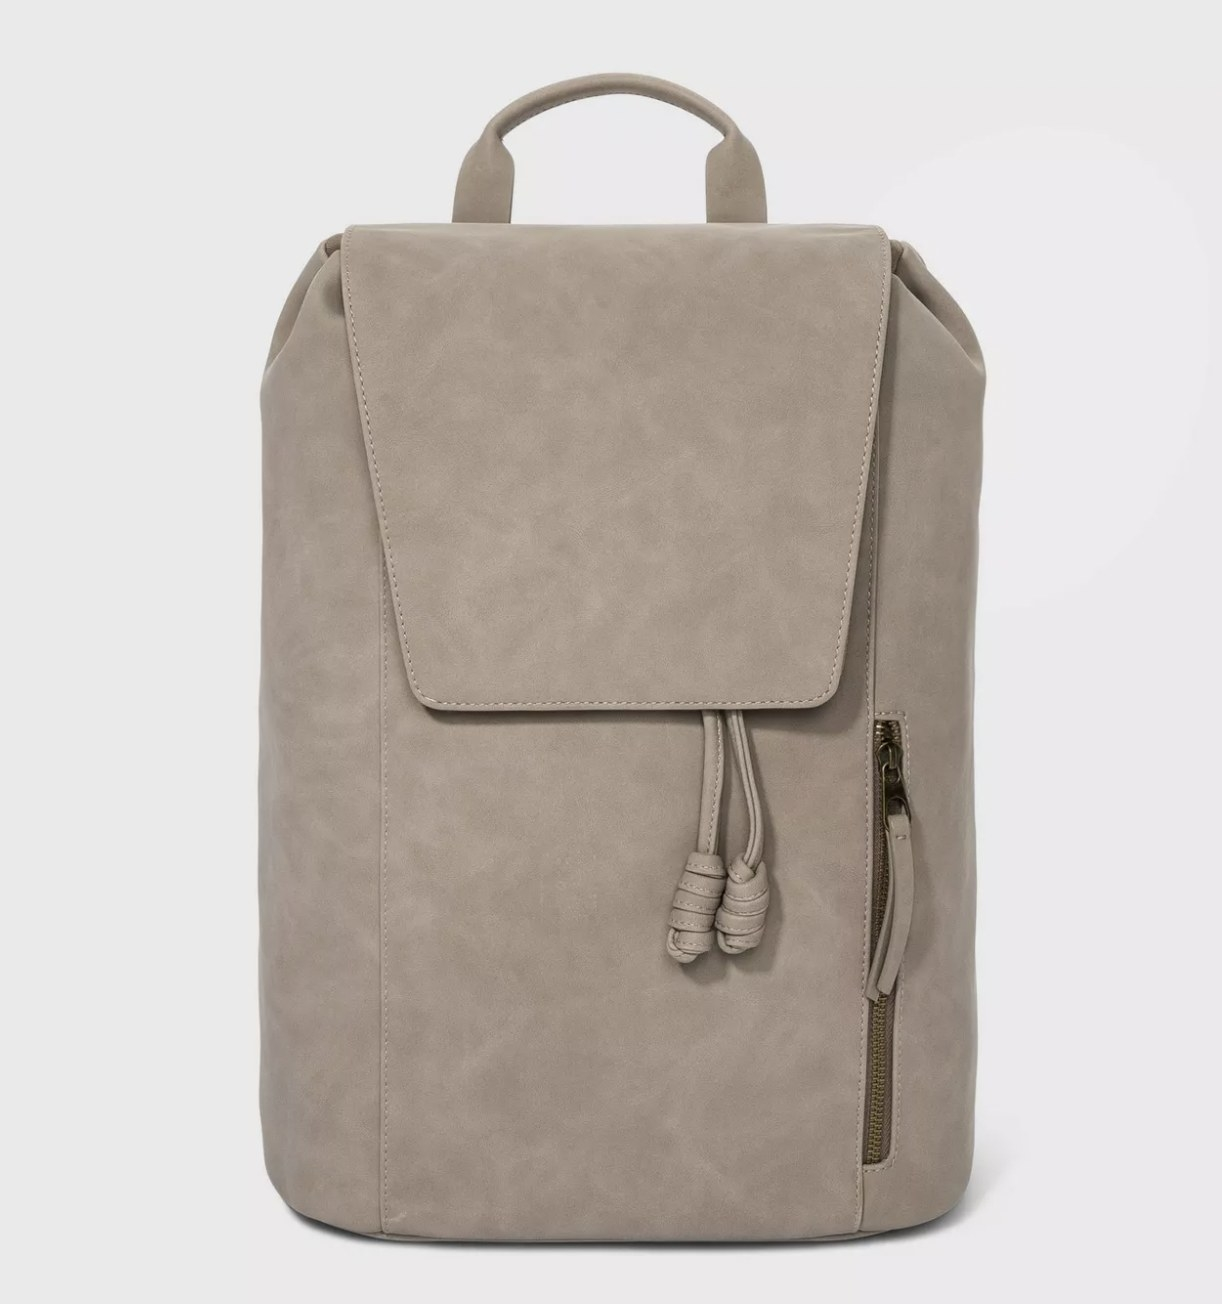 A taupe backpack with a front-sided pocket